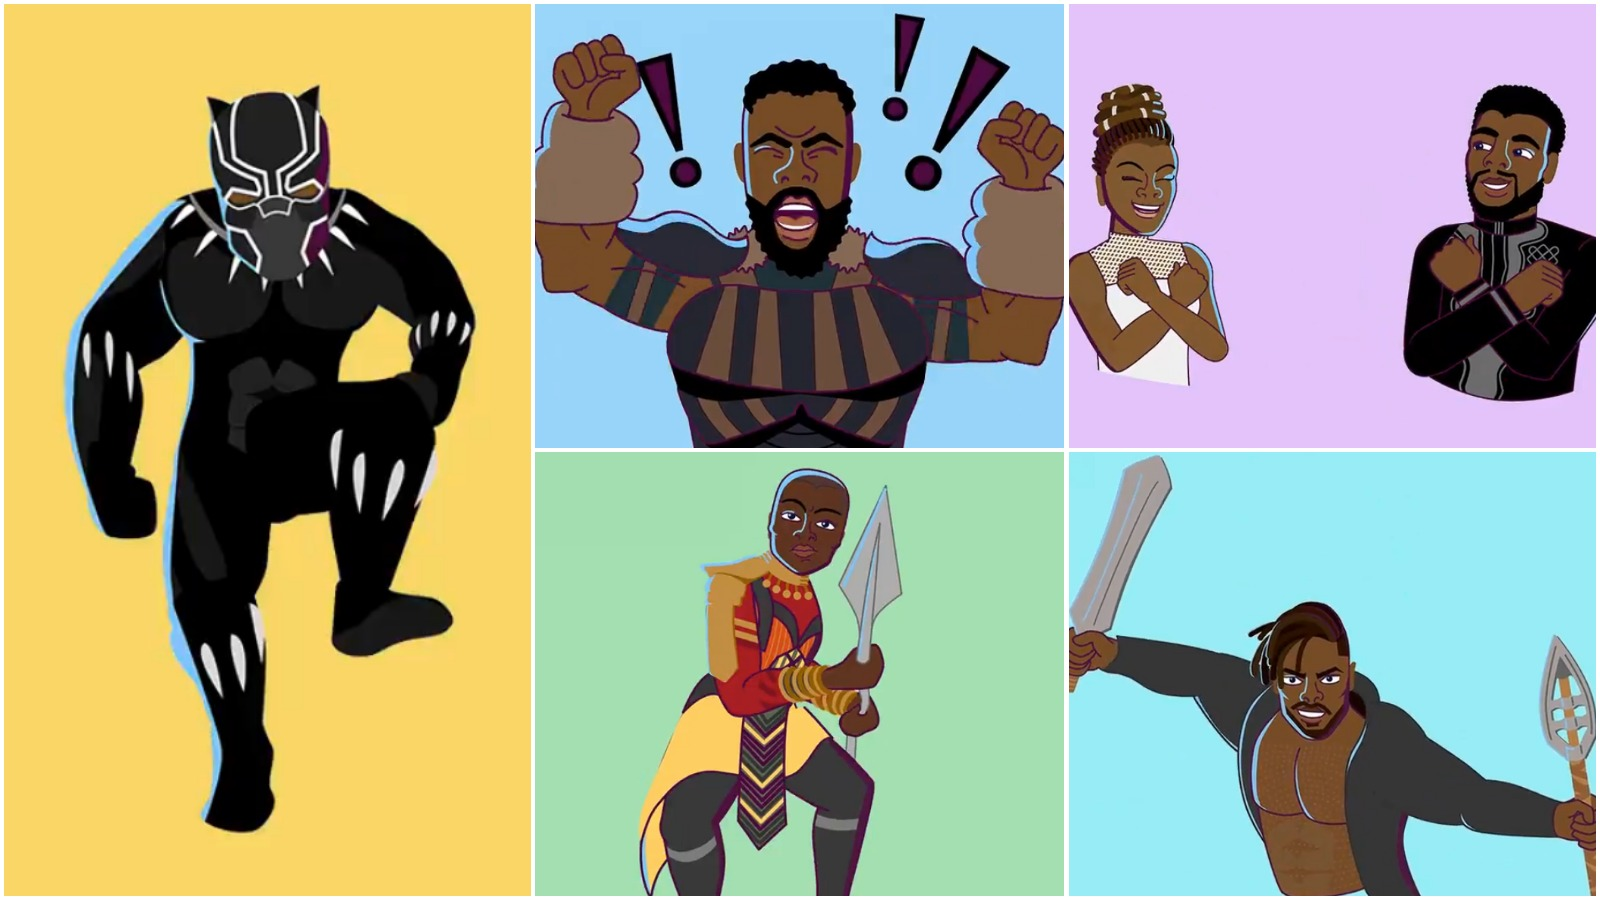 Disney releases black panther imessage stickers for ios devices